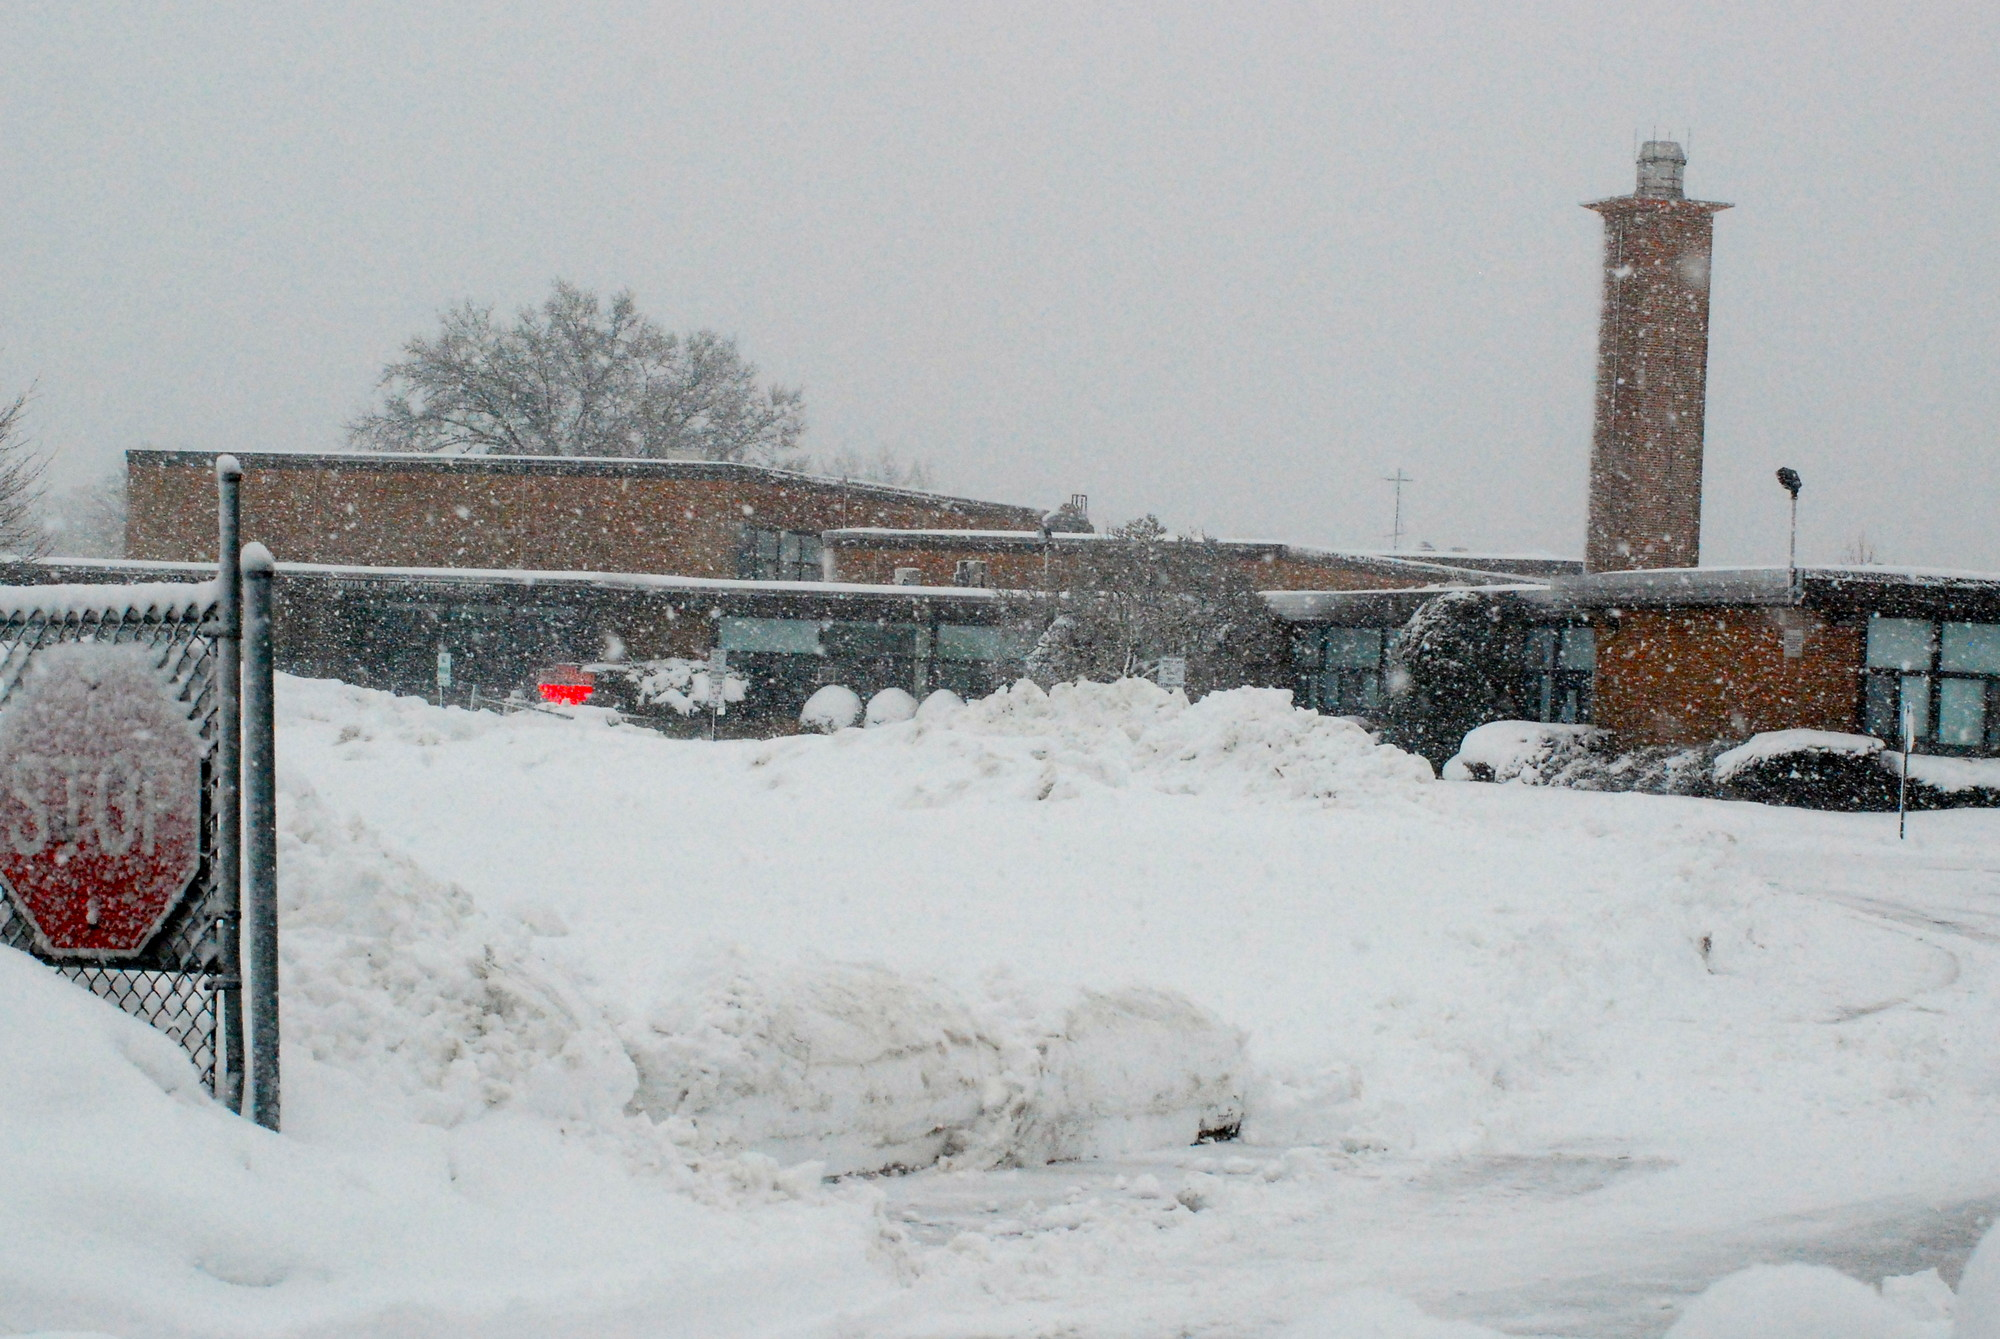 Levy-Lakeside Elementary School in Merrick blanketed in snow.